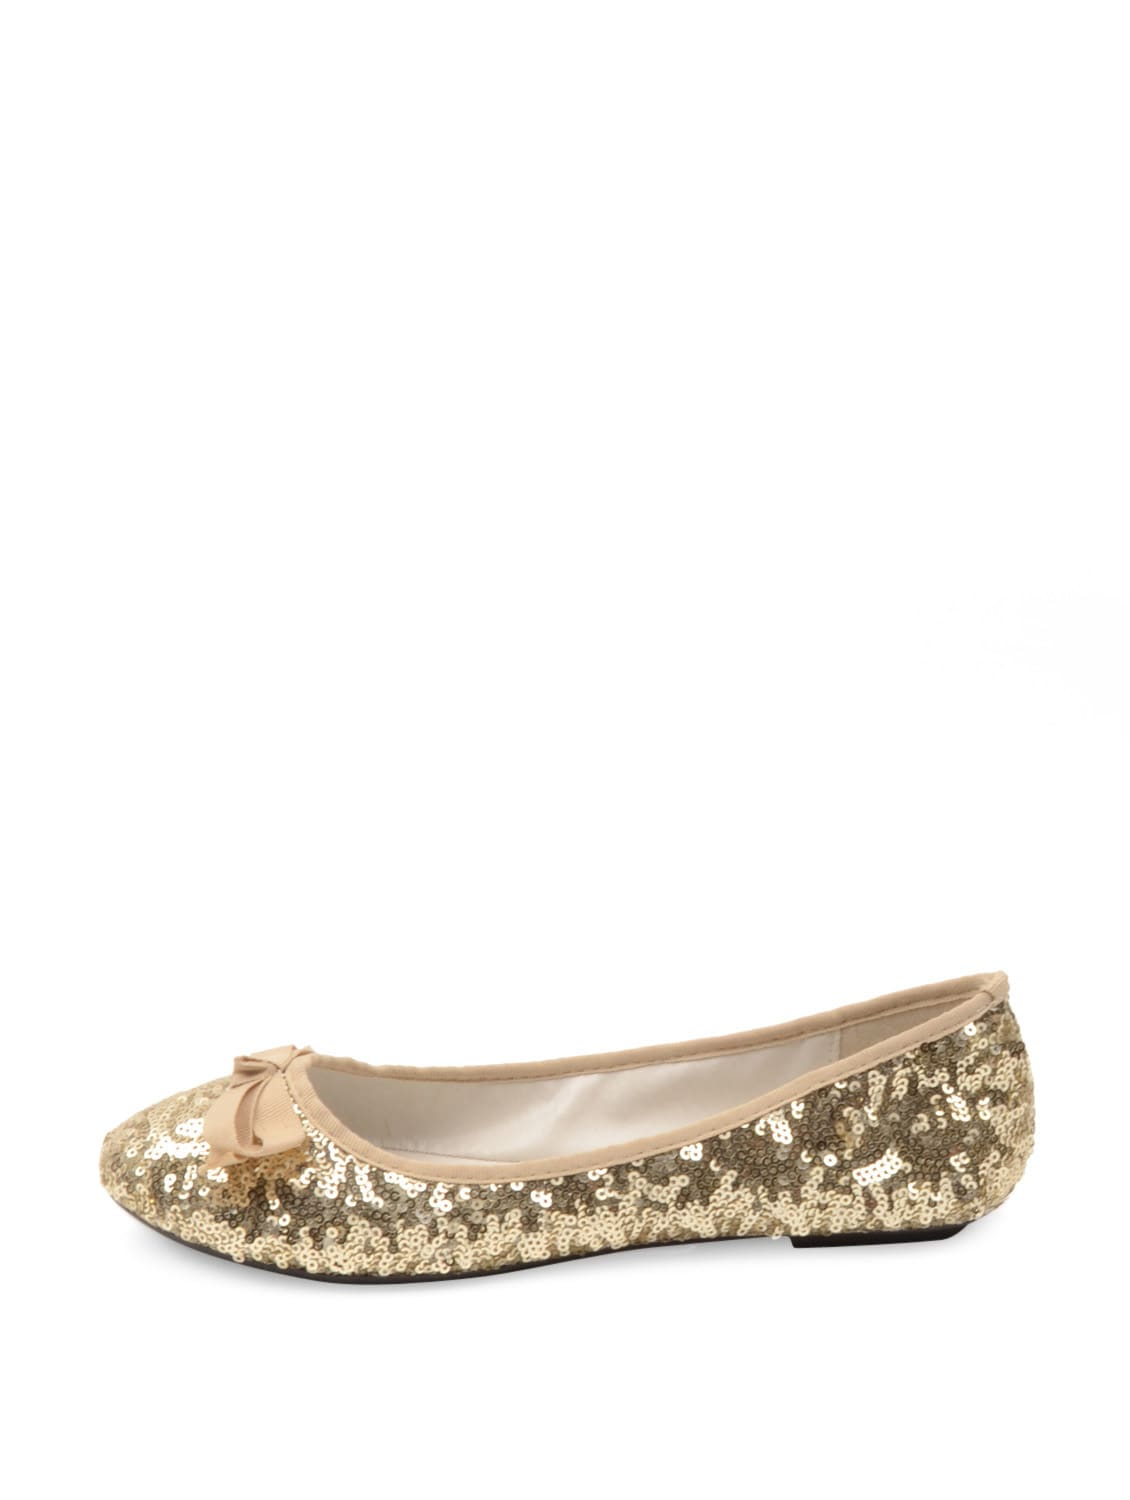 c1503fe88b35 Buy Glitter Gold Ballet Flats for Women from Carlton London for ₹1995 at 0%  off